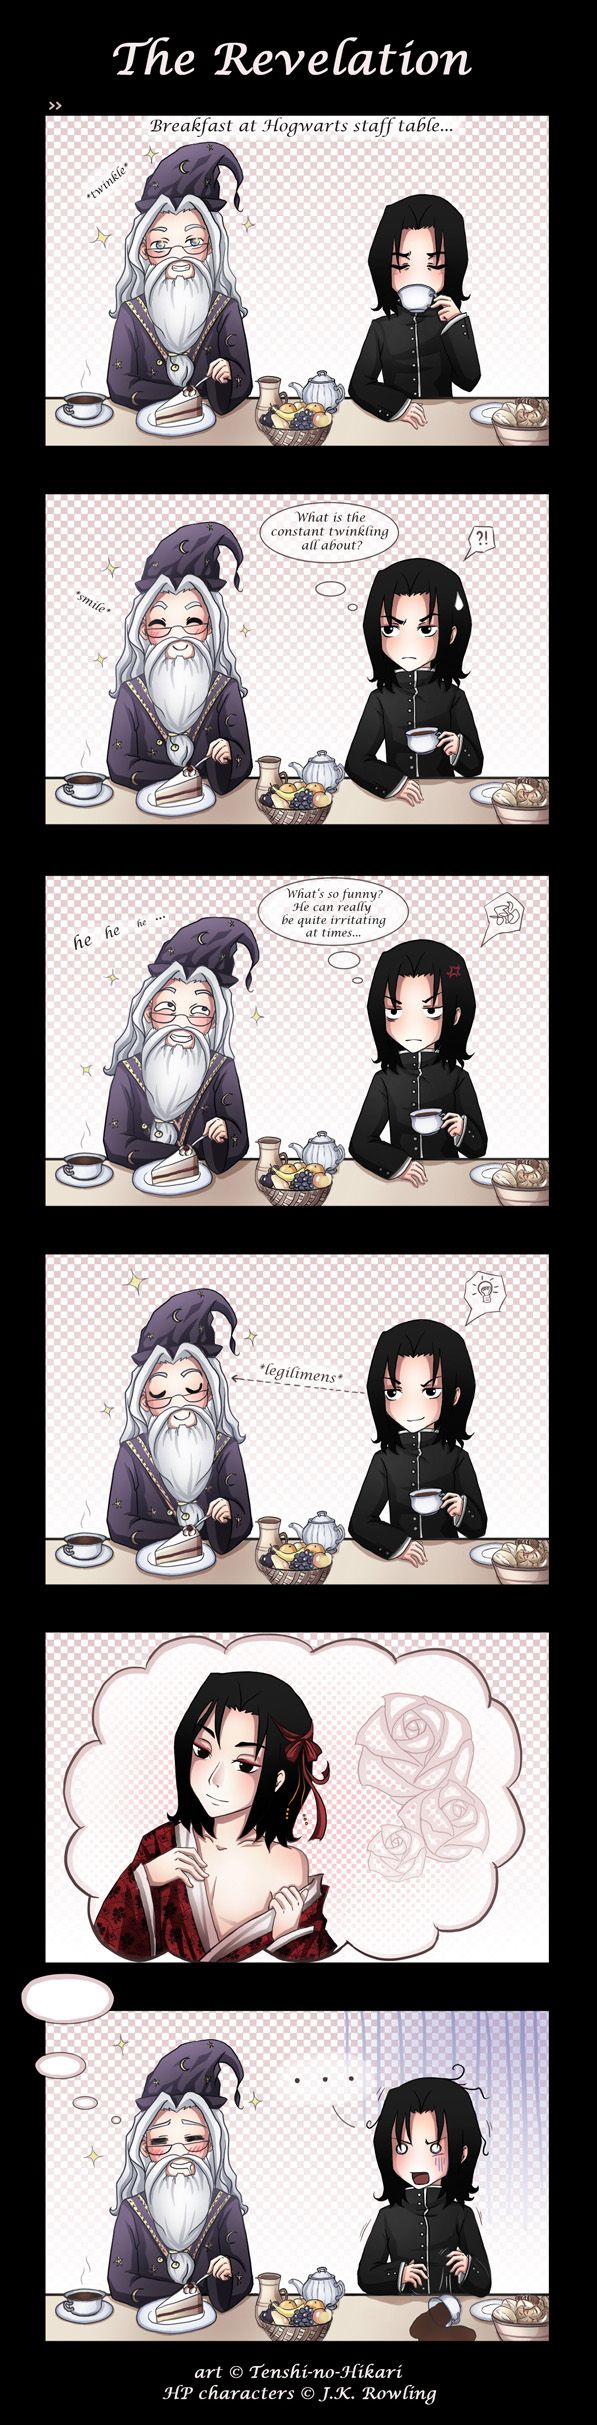 HP - The revelation by Tenshi-no-Hikari on deviantART